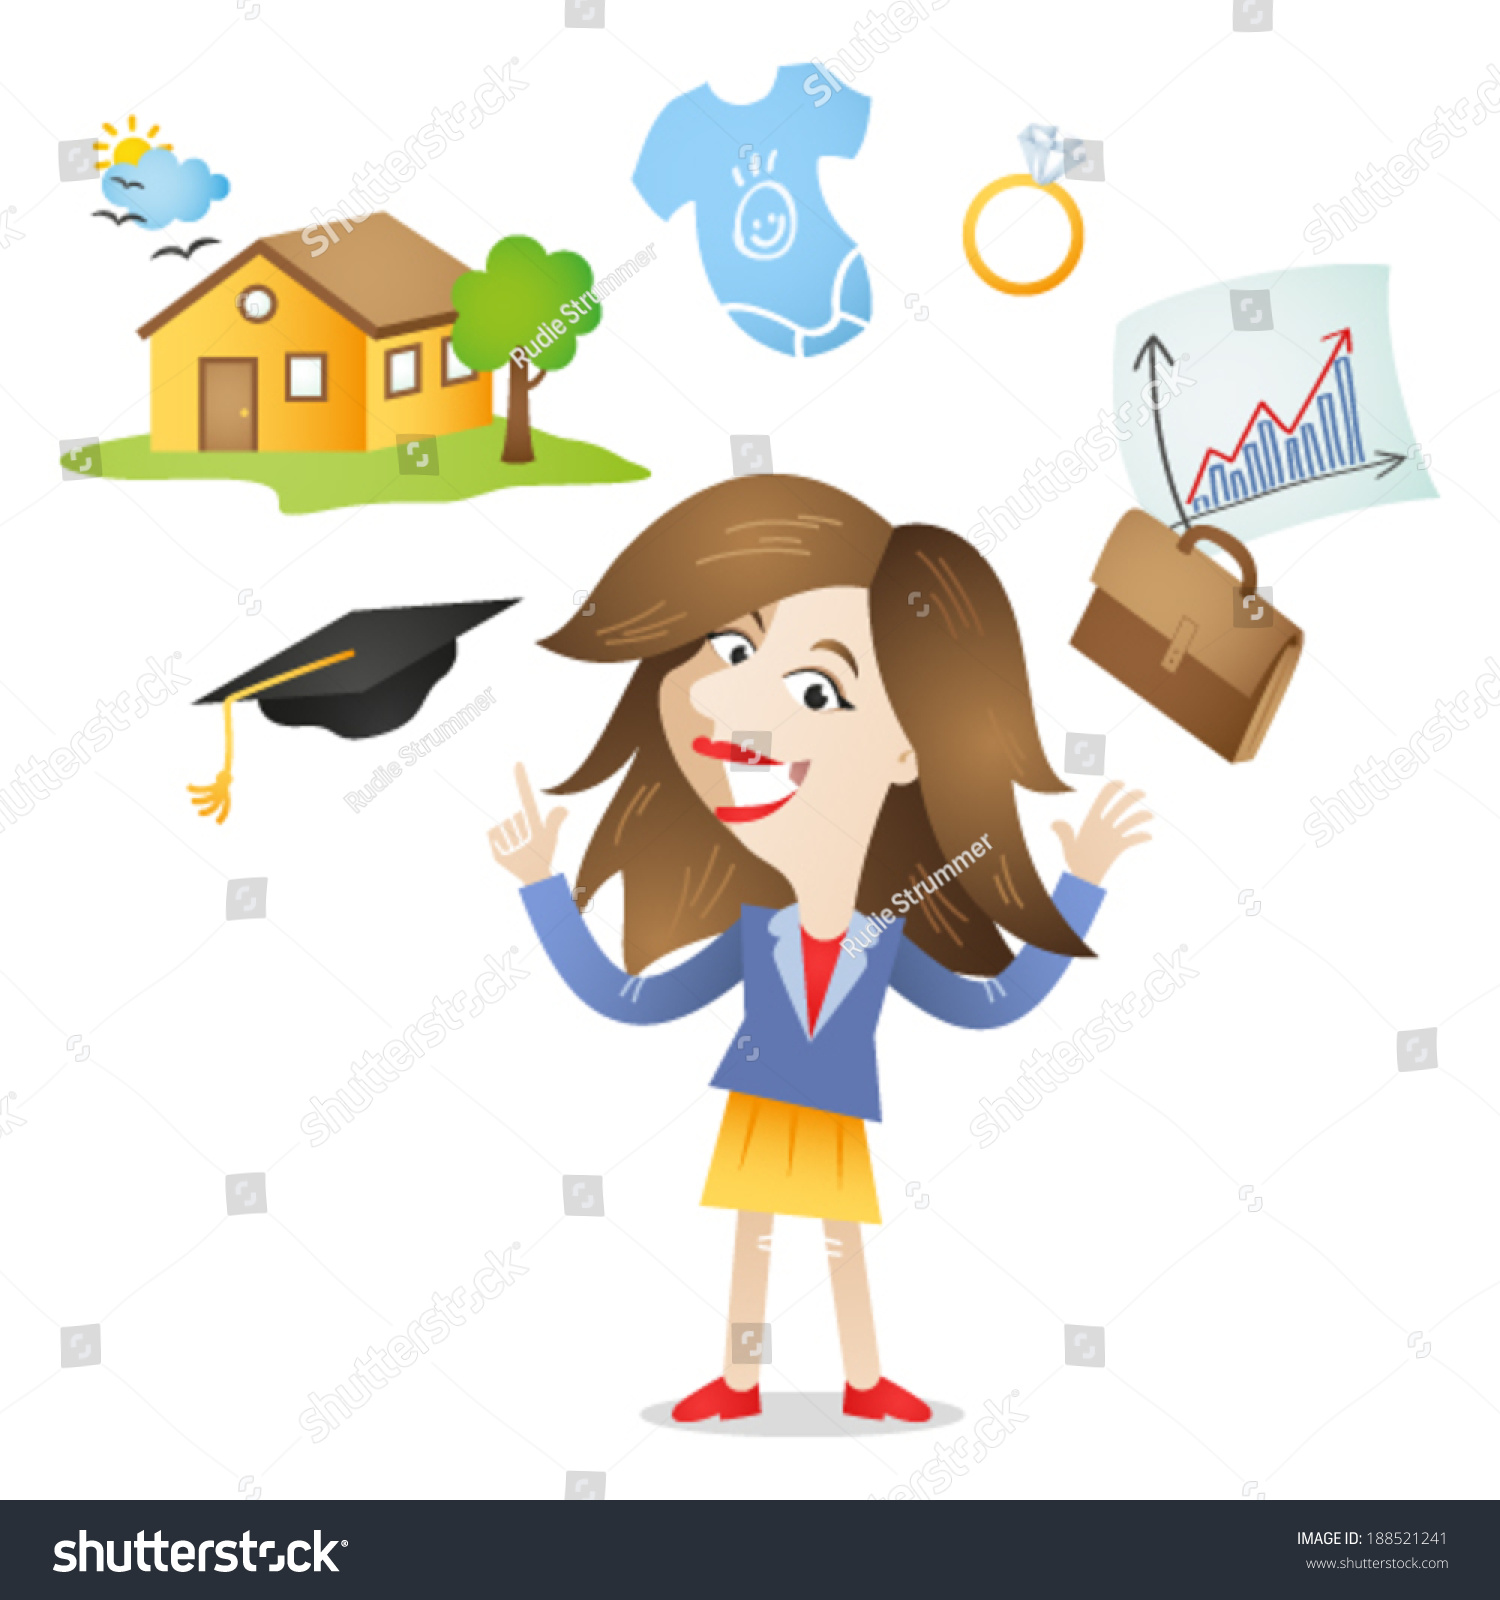 Vector Illustration Cartoon Character Young Adult Stock Vector Royalty Free 188521241